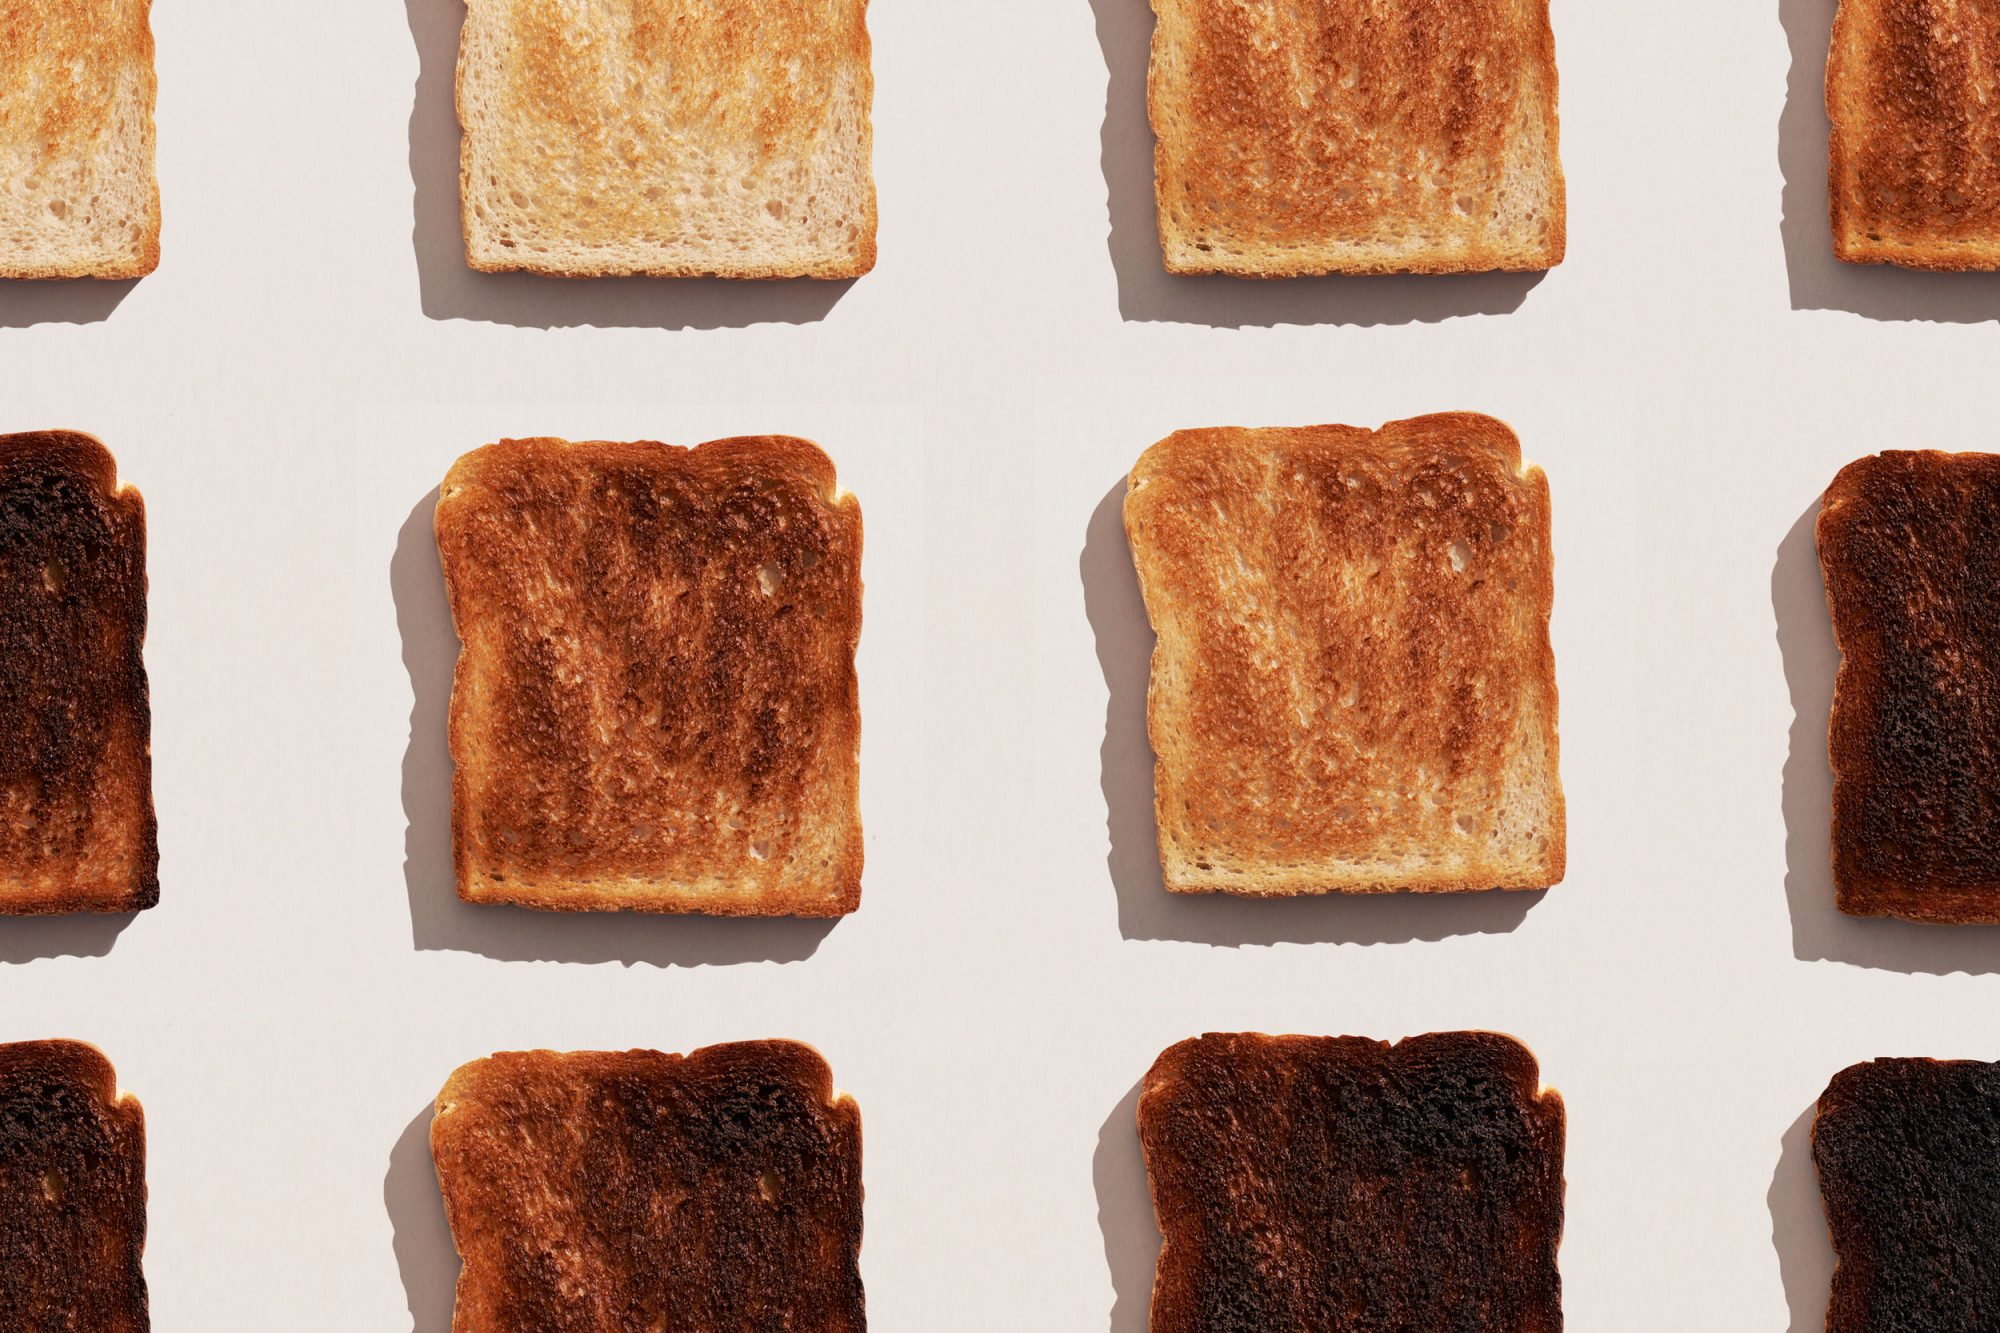 rows of toast